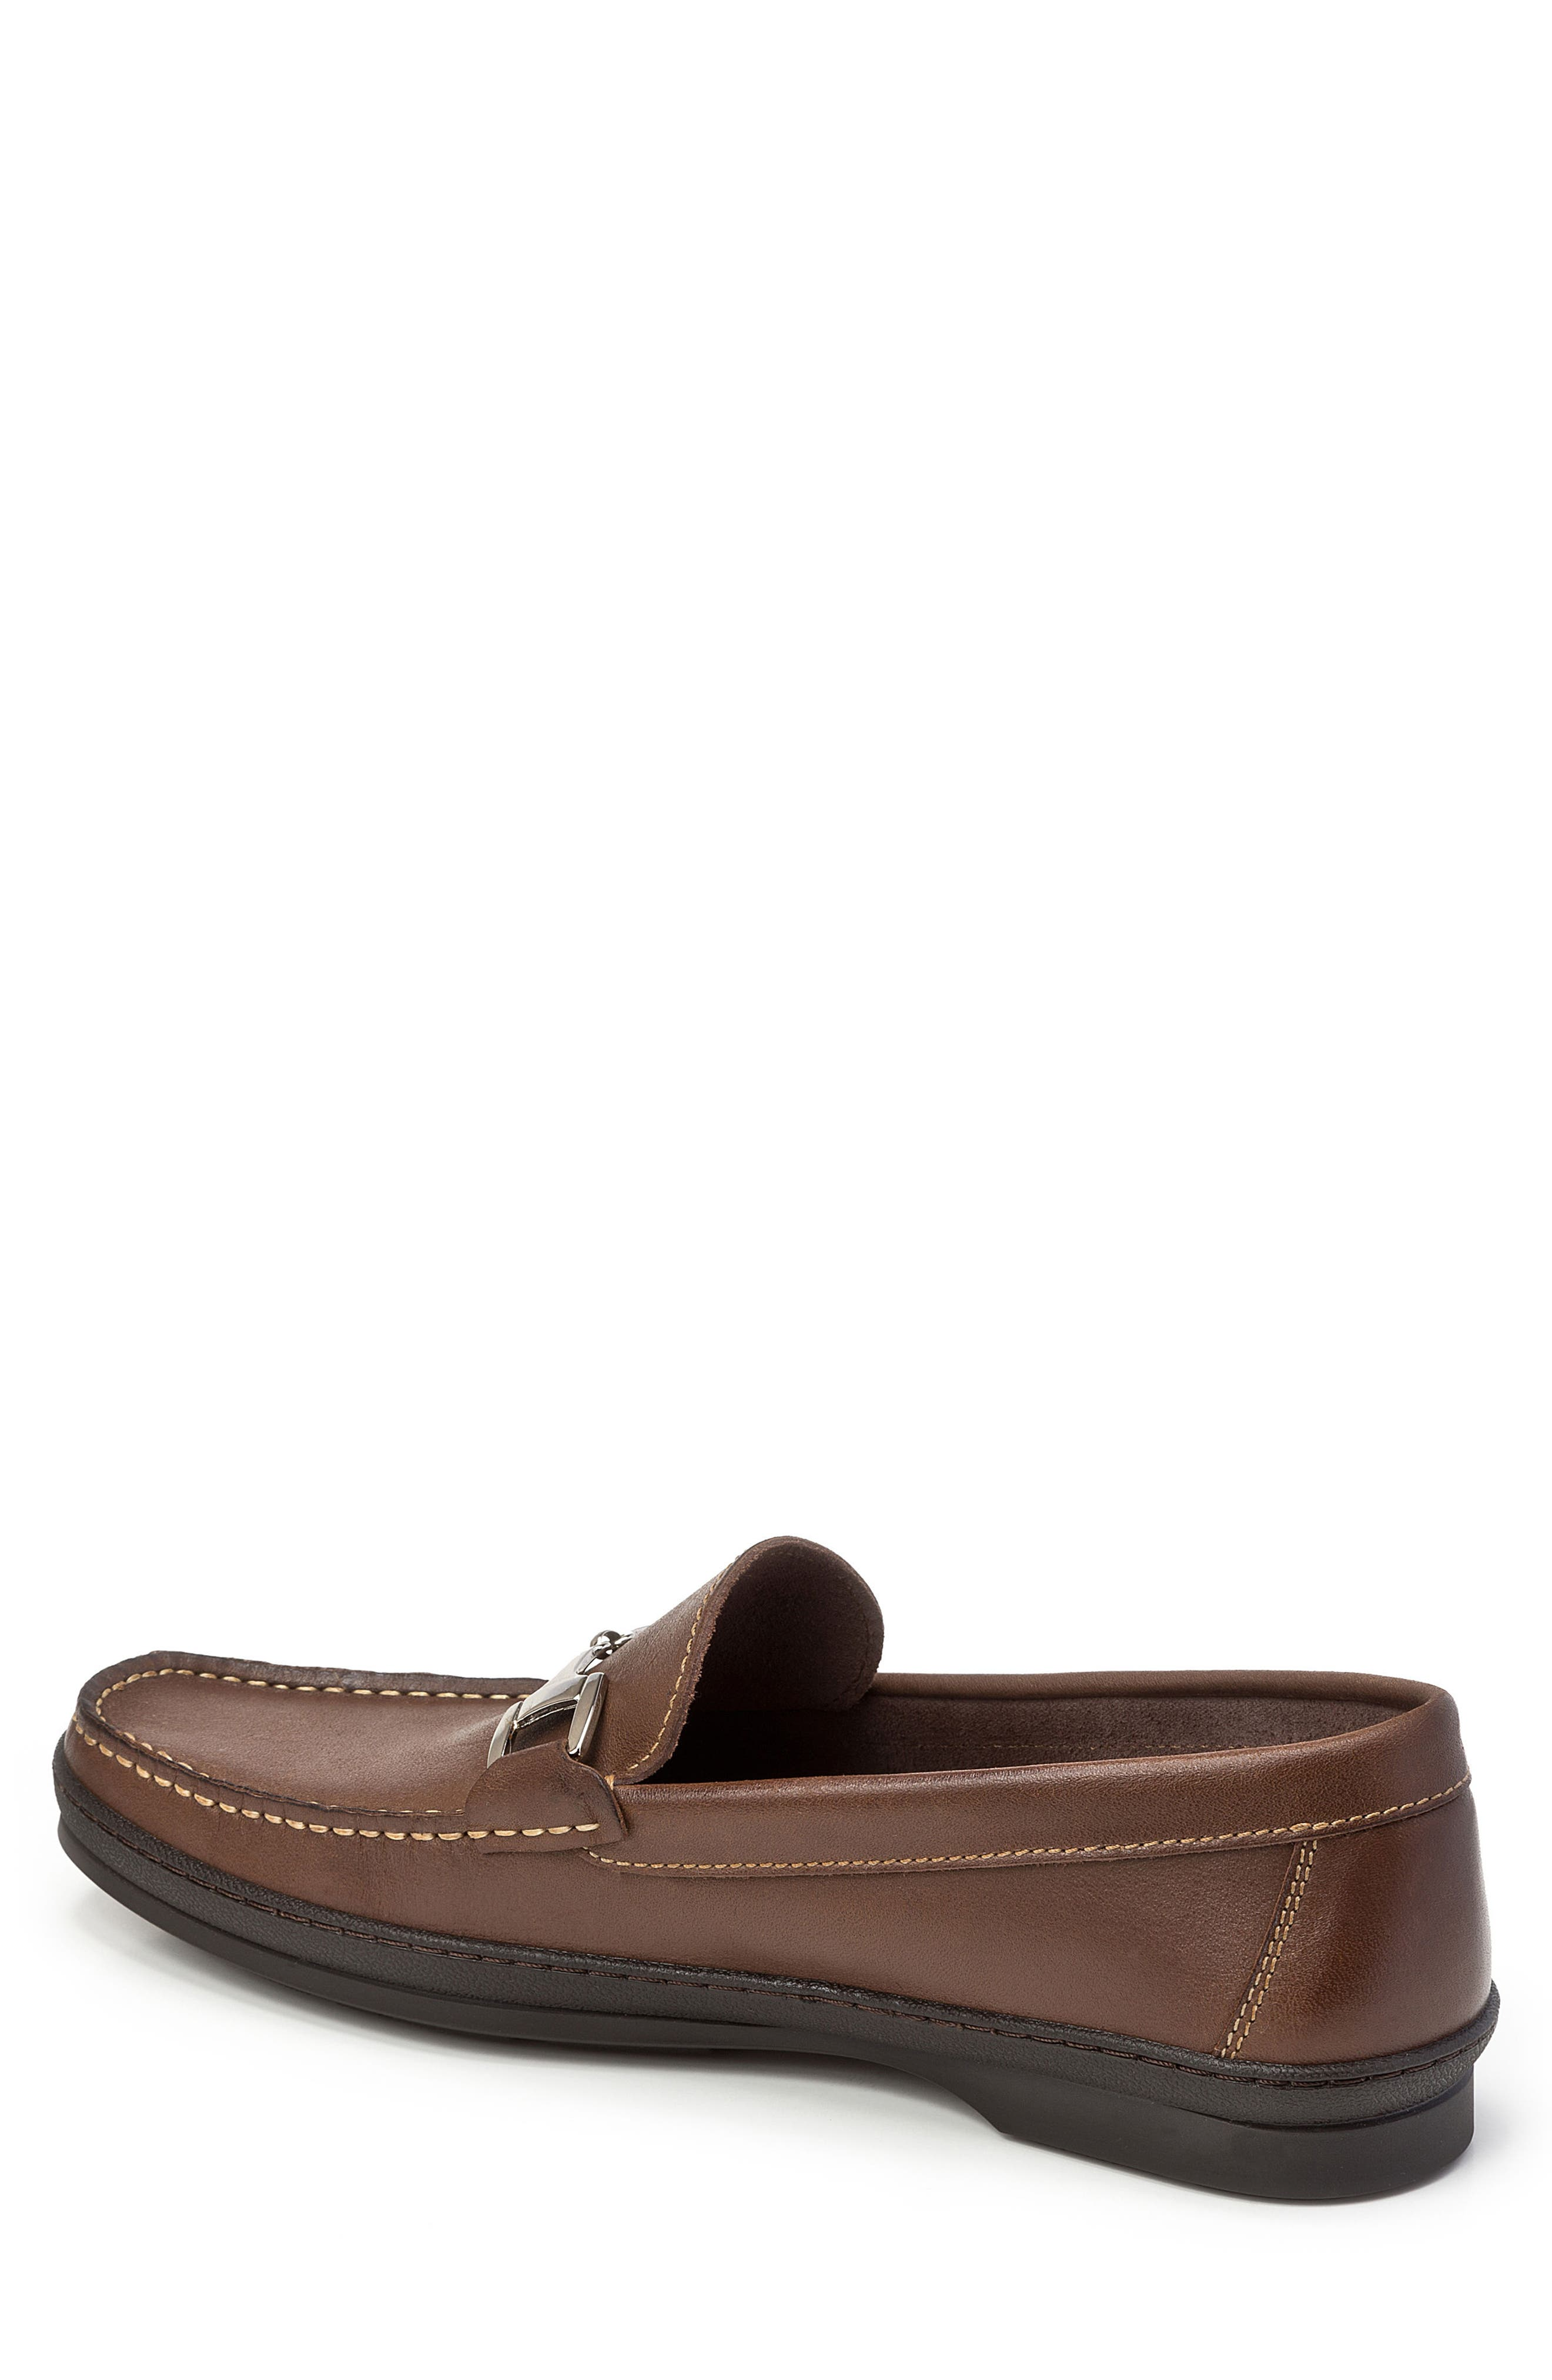 Navarro Bit Loafer,                             Alternate thumbnail 2, color,                             Brown Leather